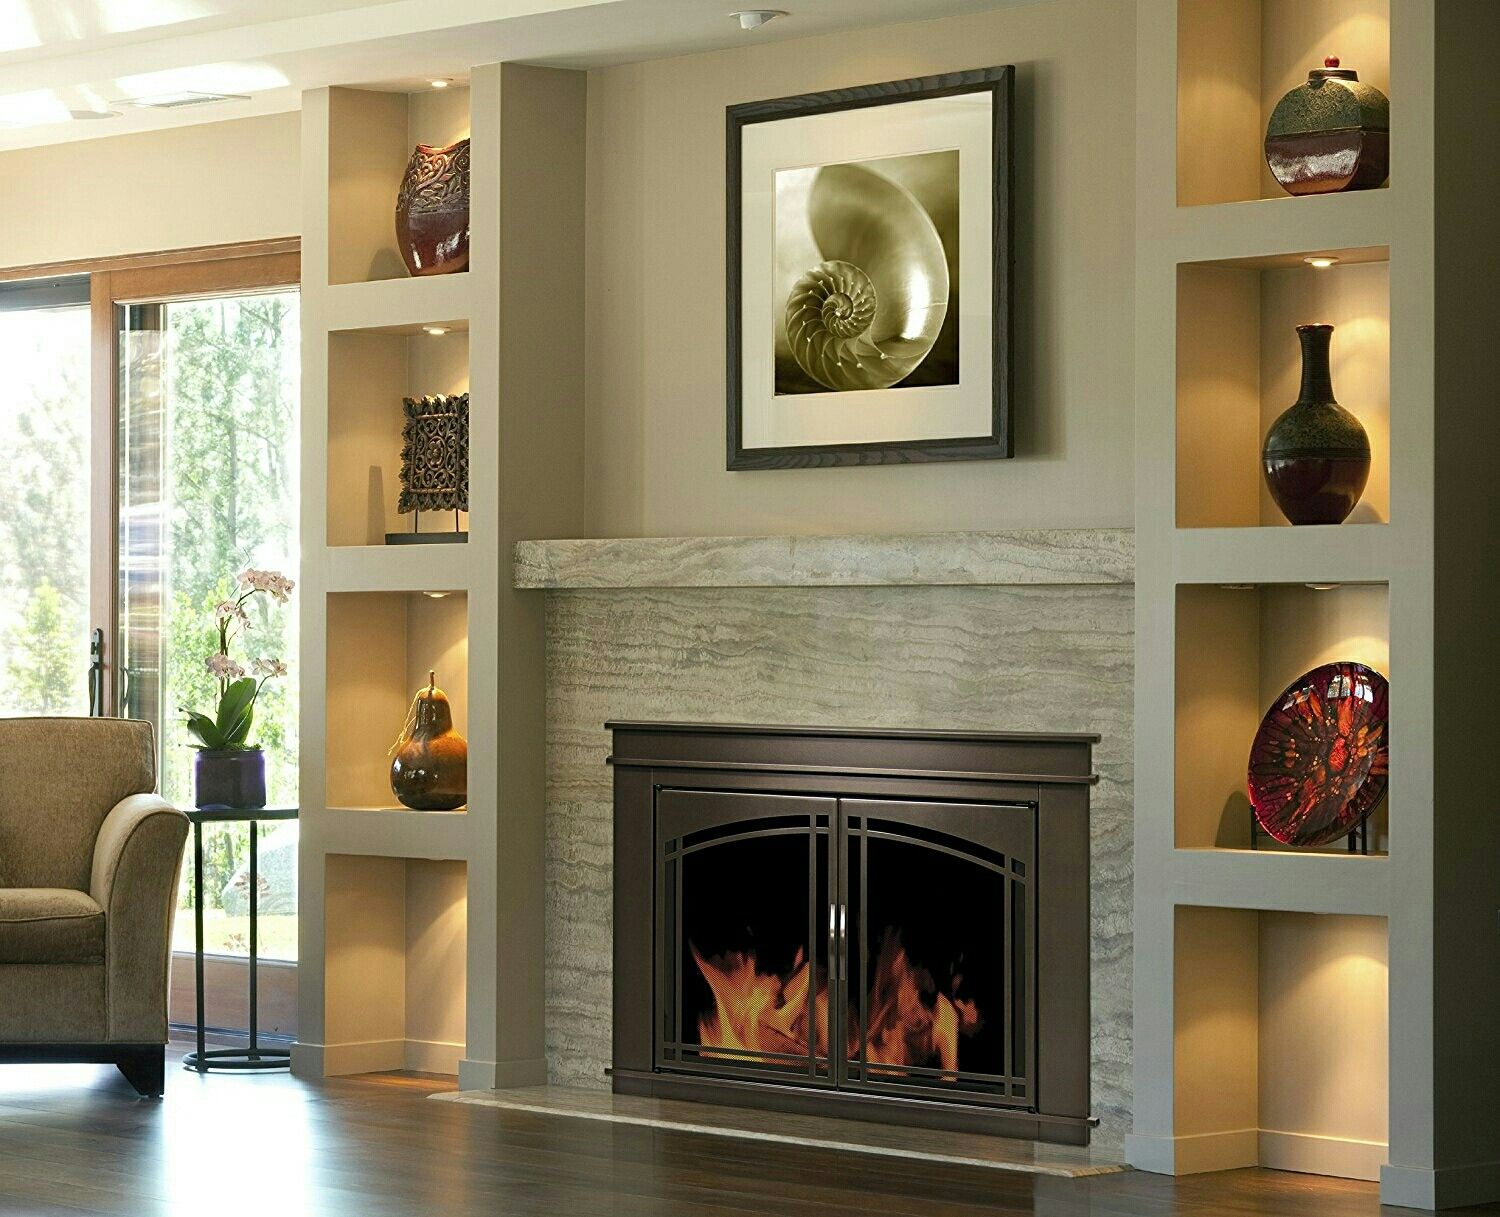 Pin By Linda Wilson On Fireplace Built In Electric Fireplace